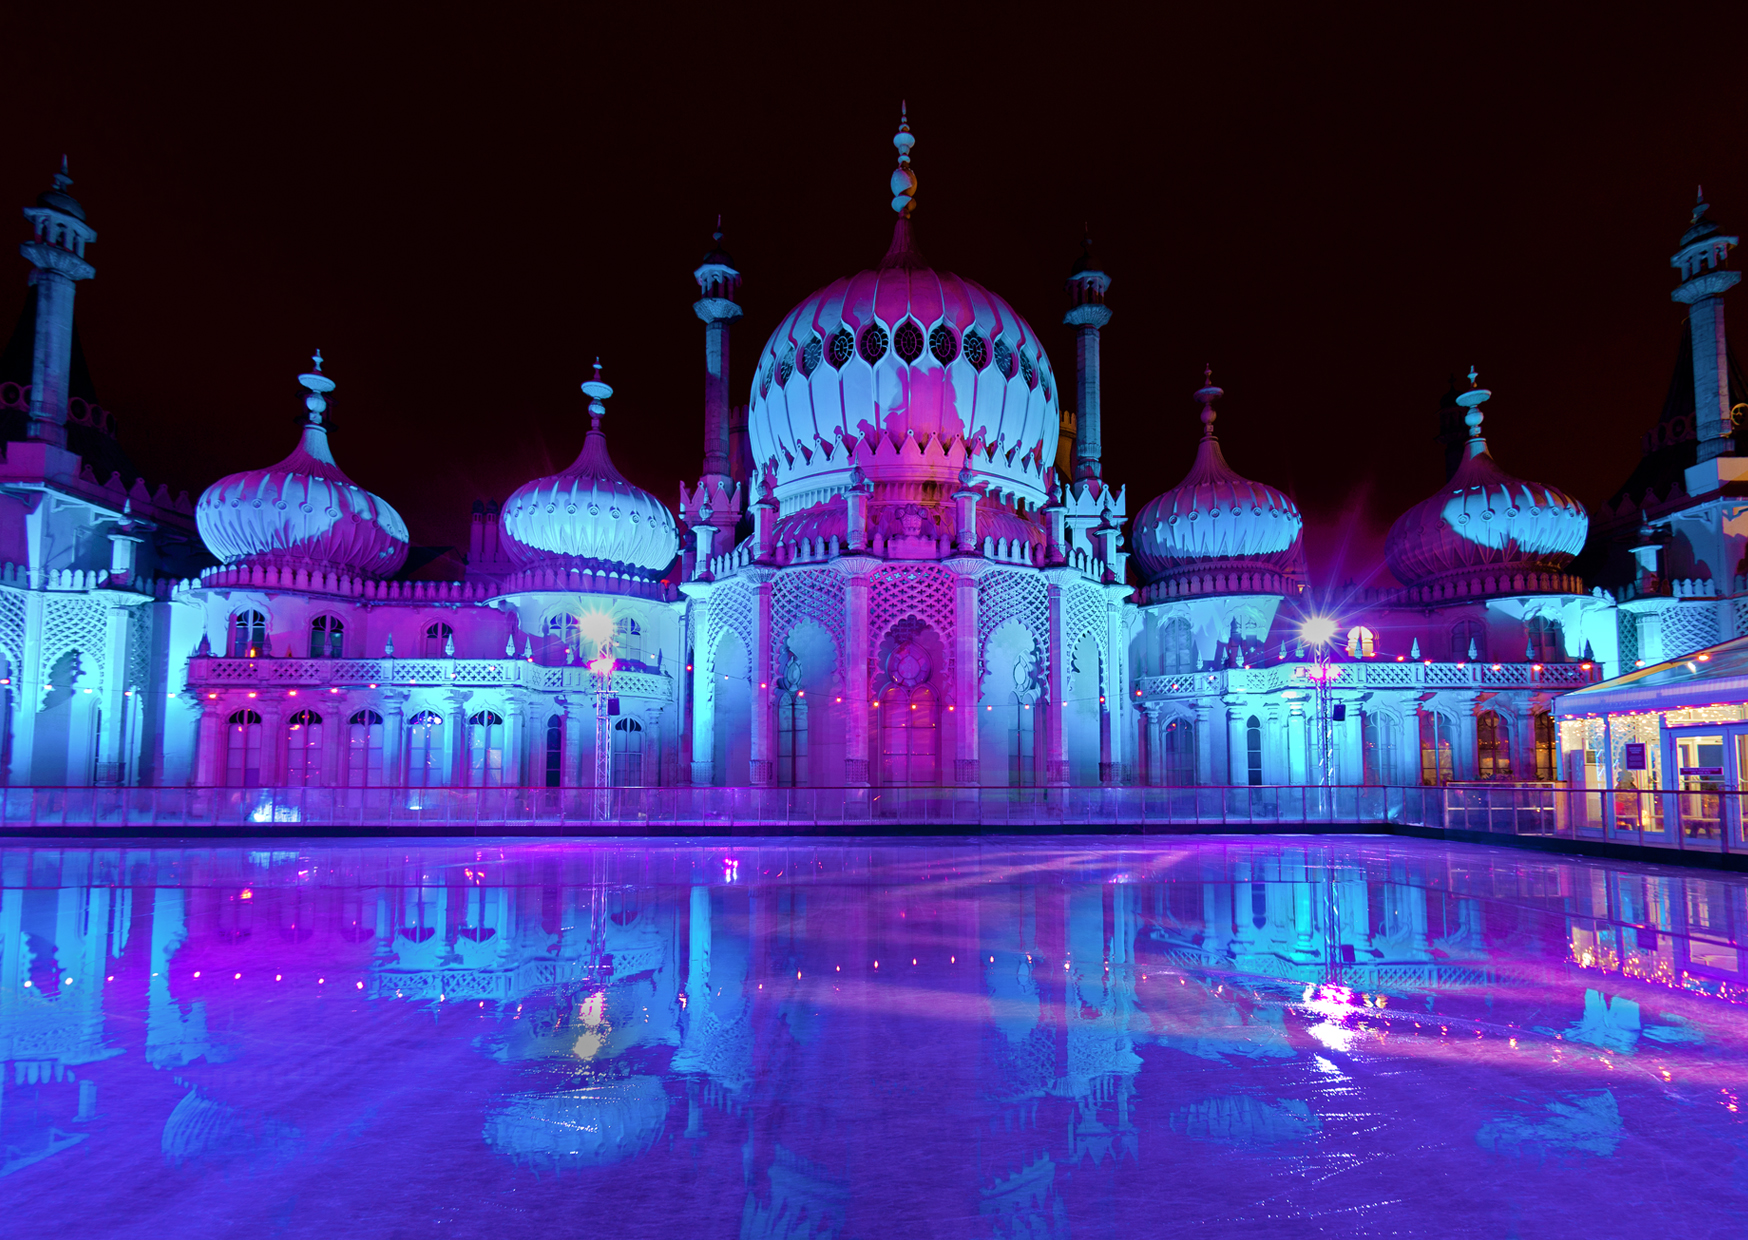 Brighton Pavilion with Ice Rink